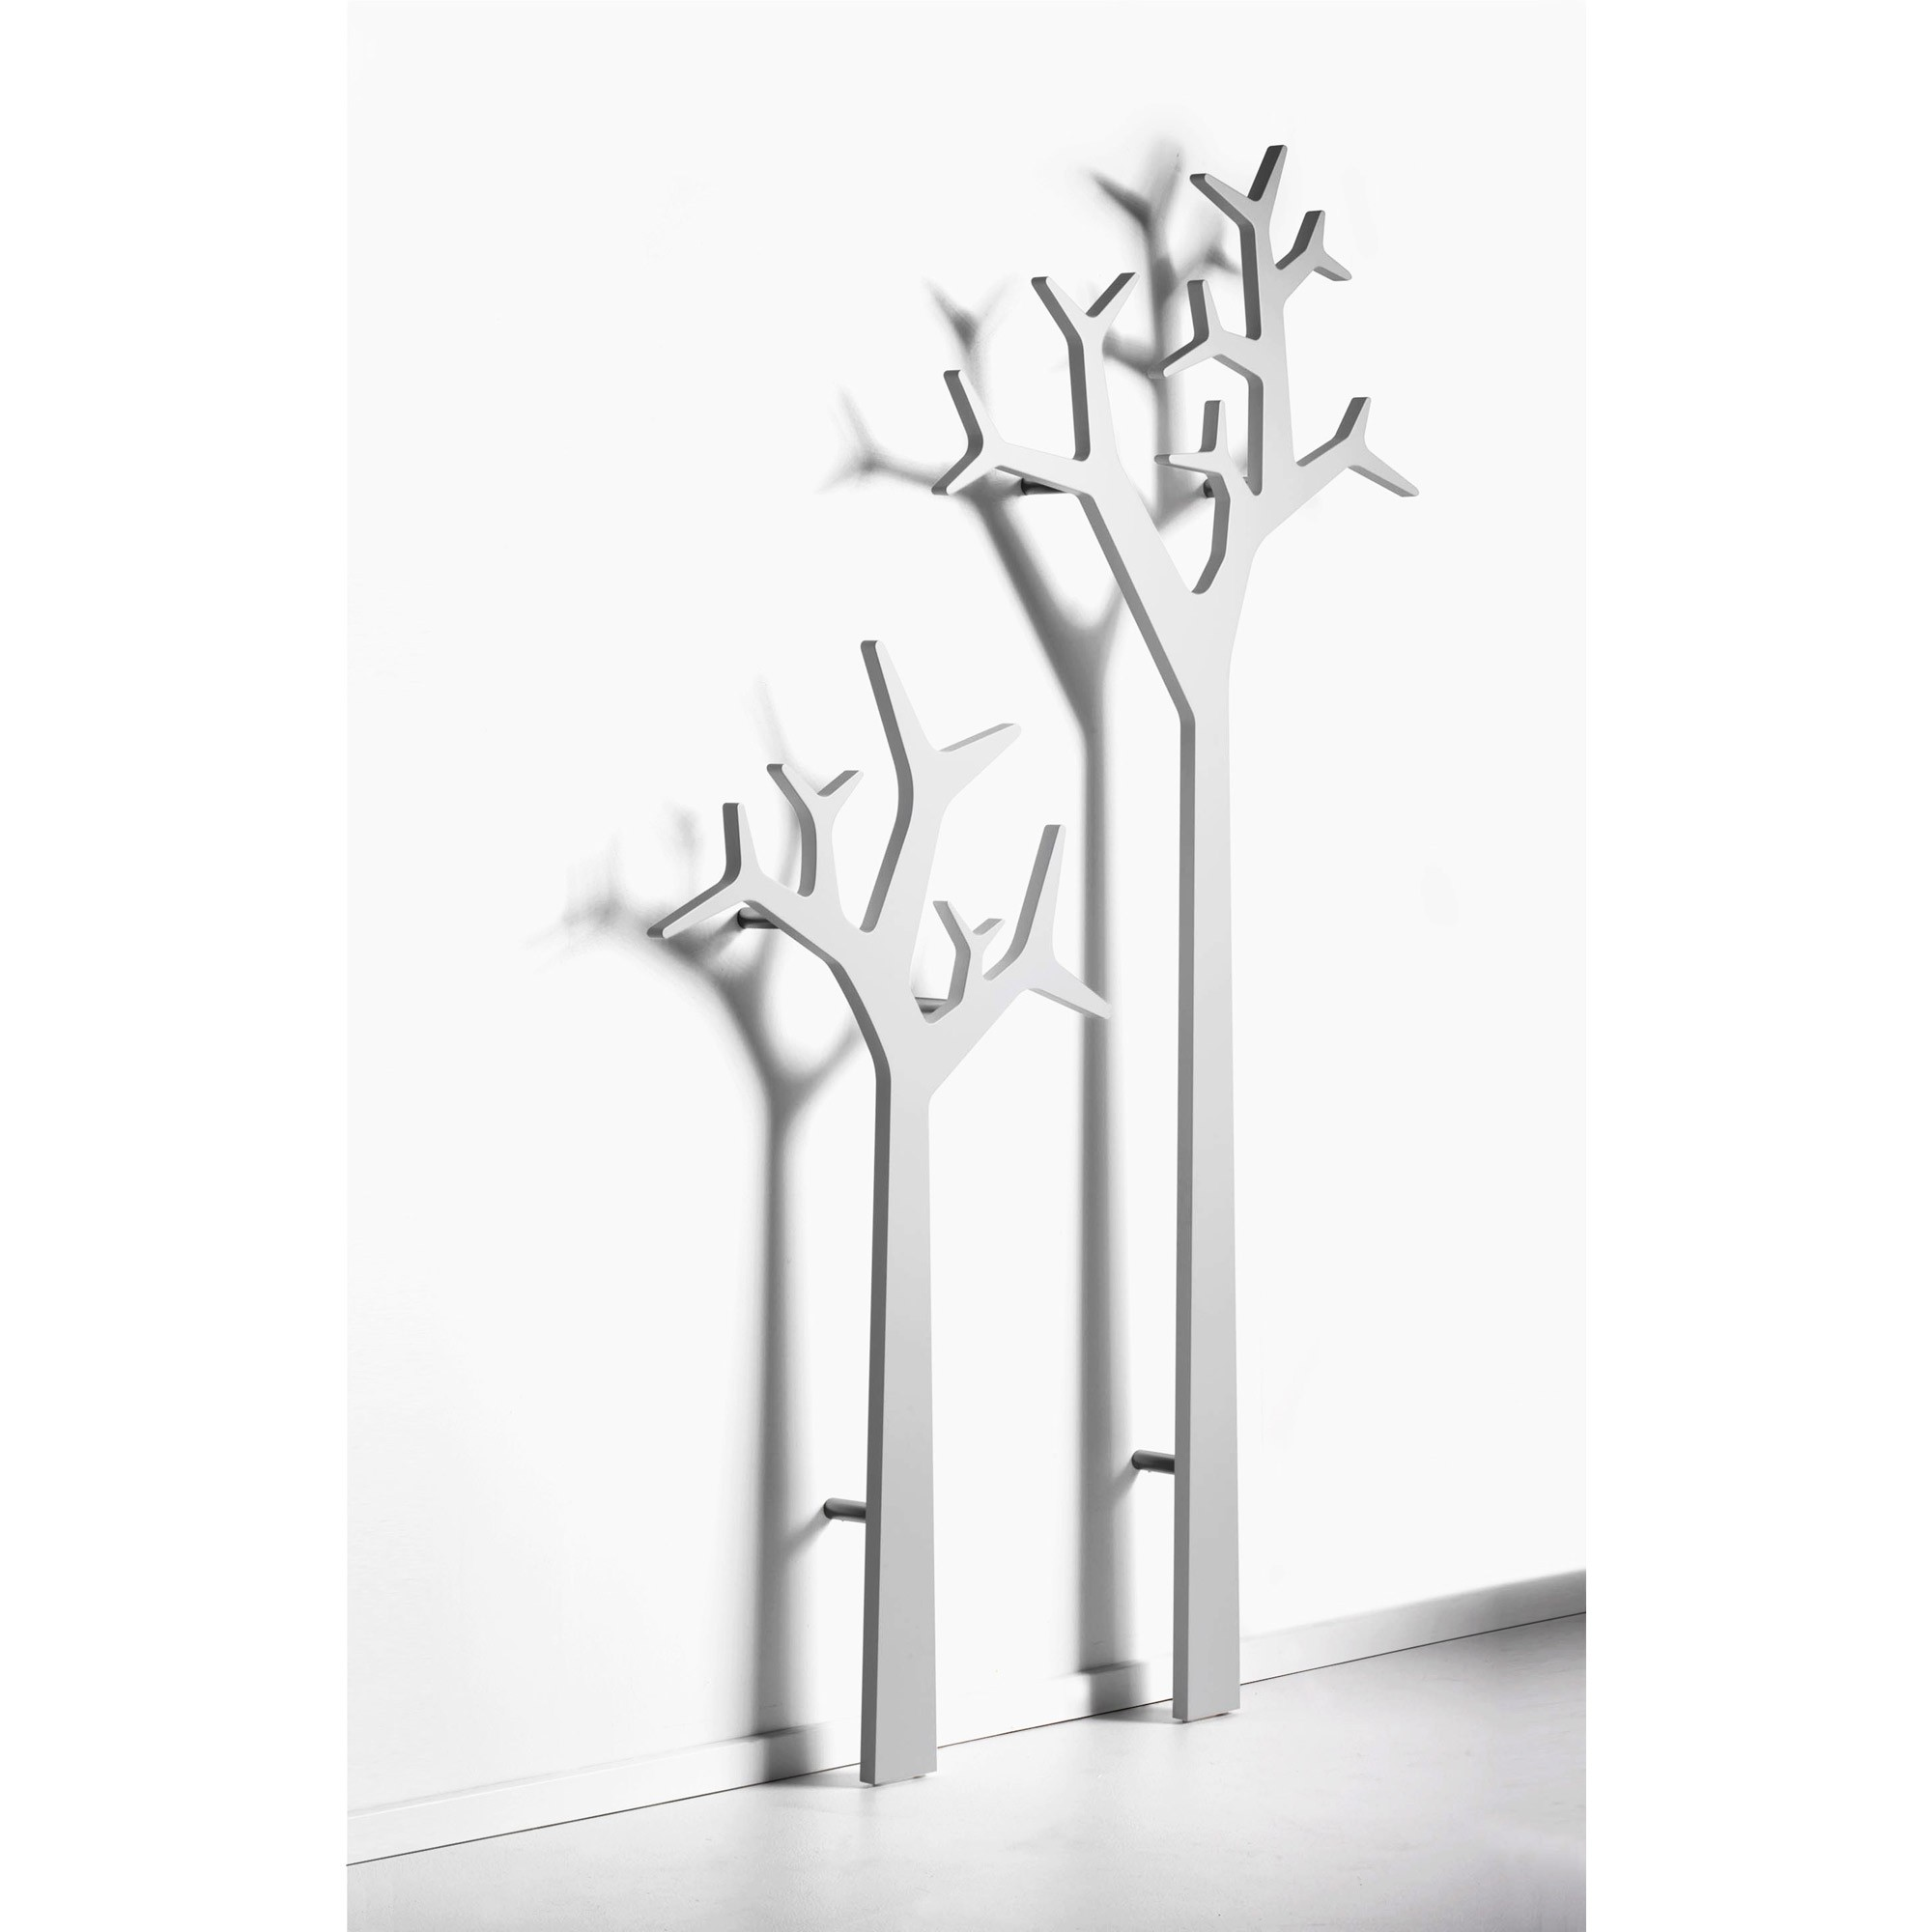 Tree coat stands can be attached to the walls